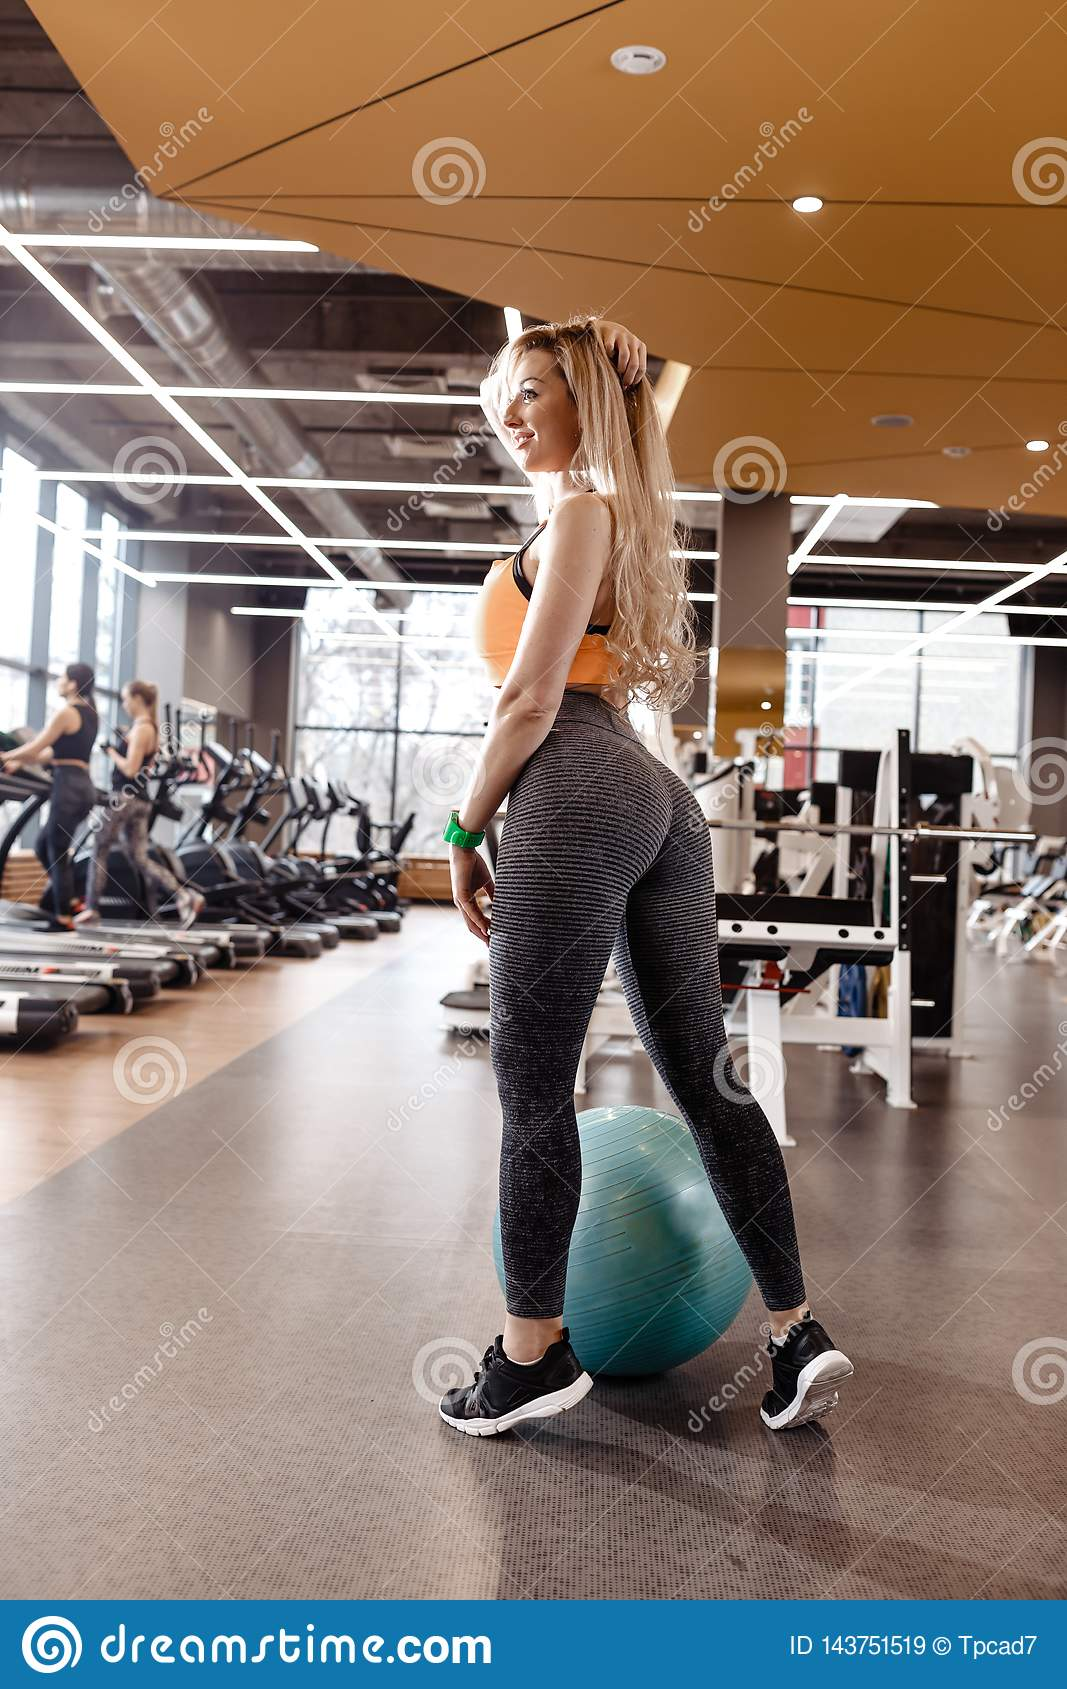 Slender blond girl with long hair dressed in a sportswear is posing next to the fitness ball in the modern gym with a